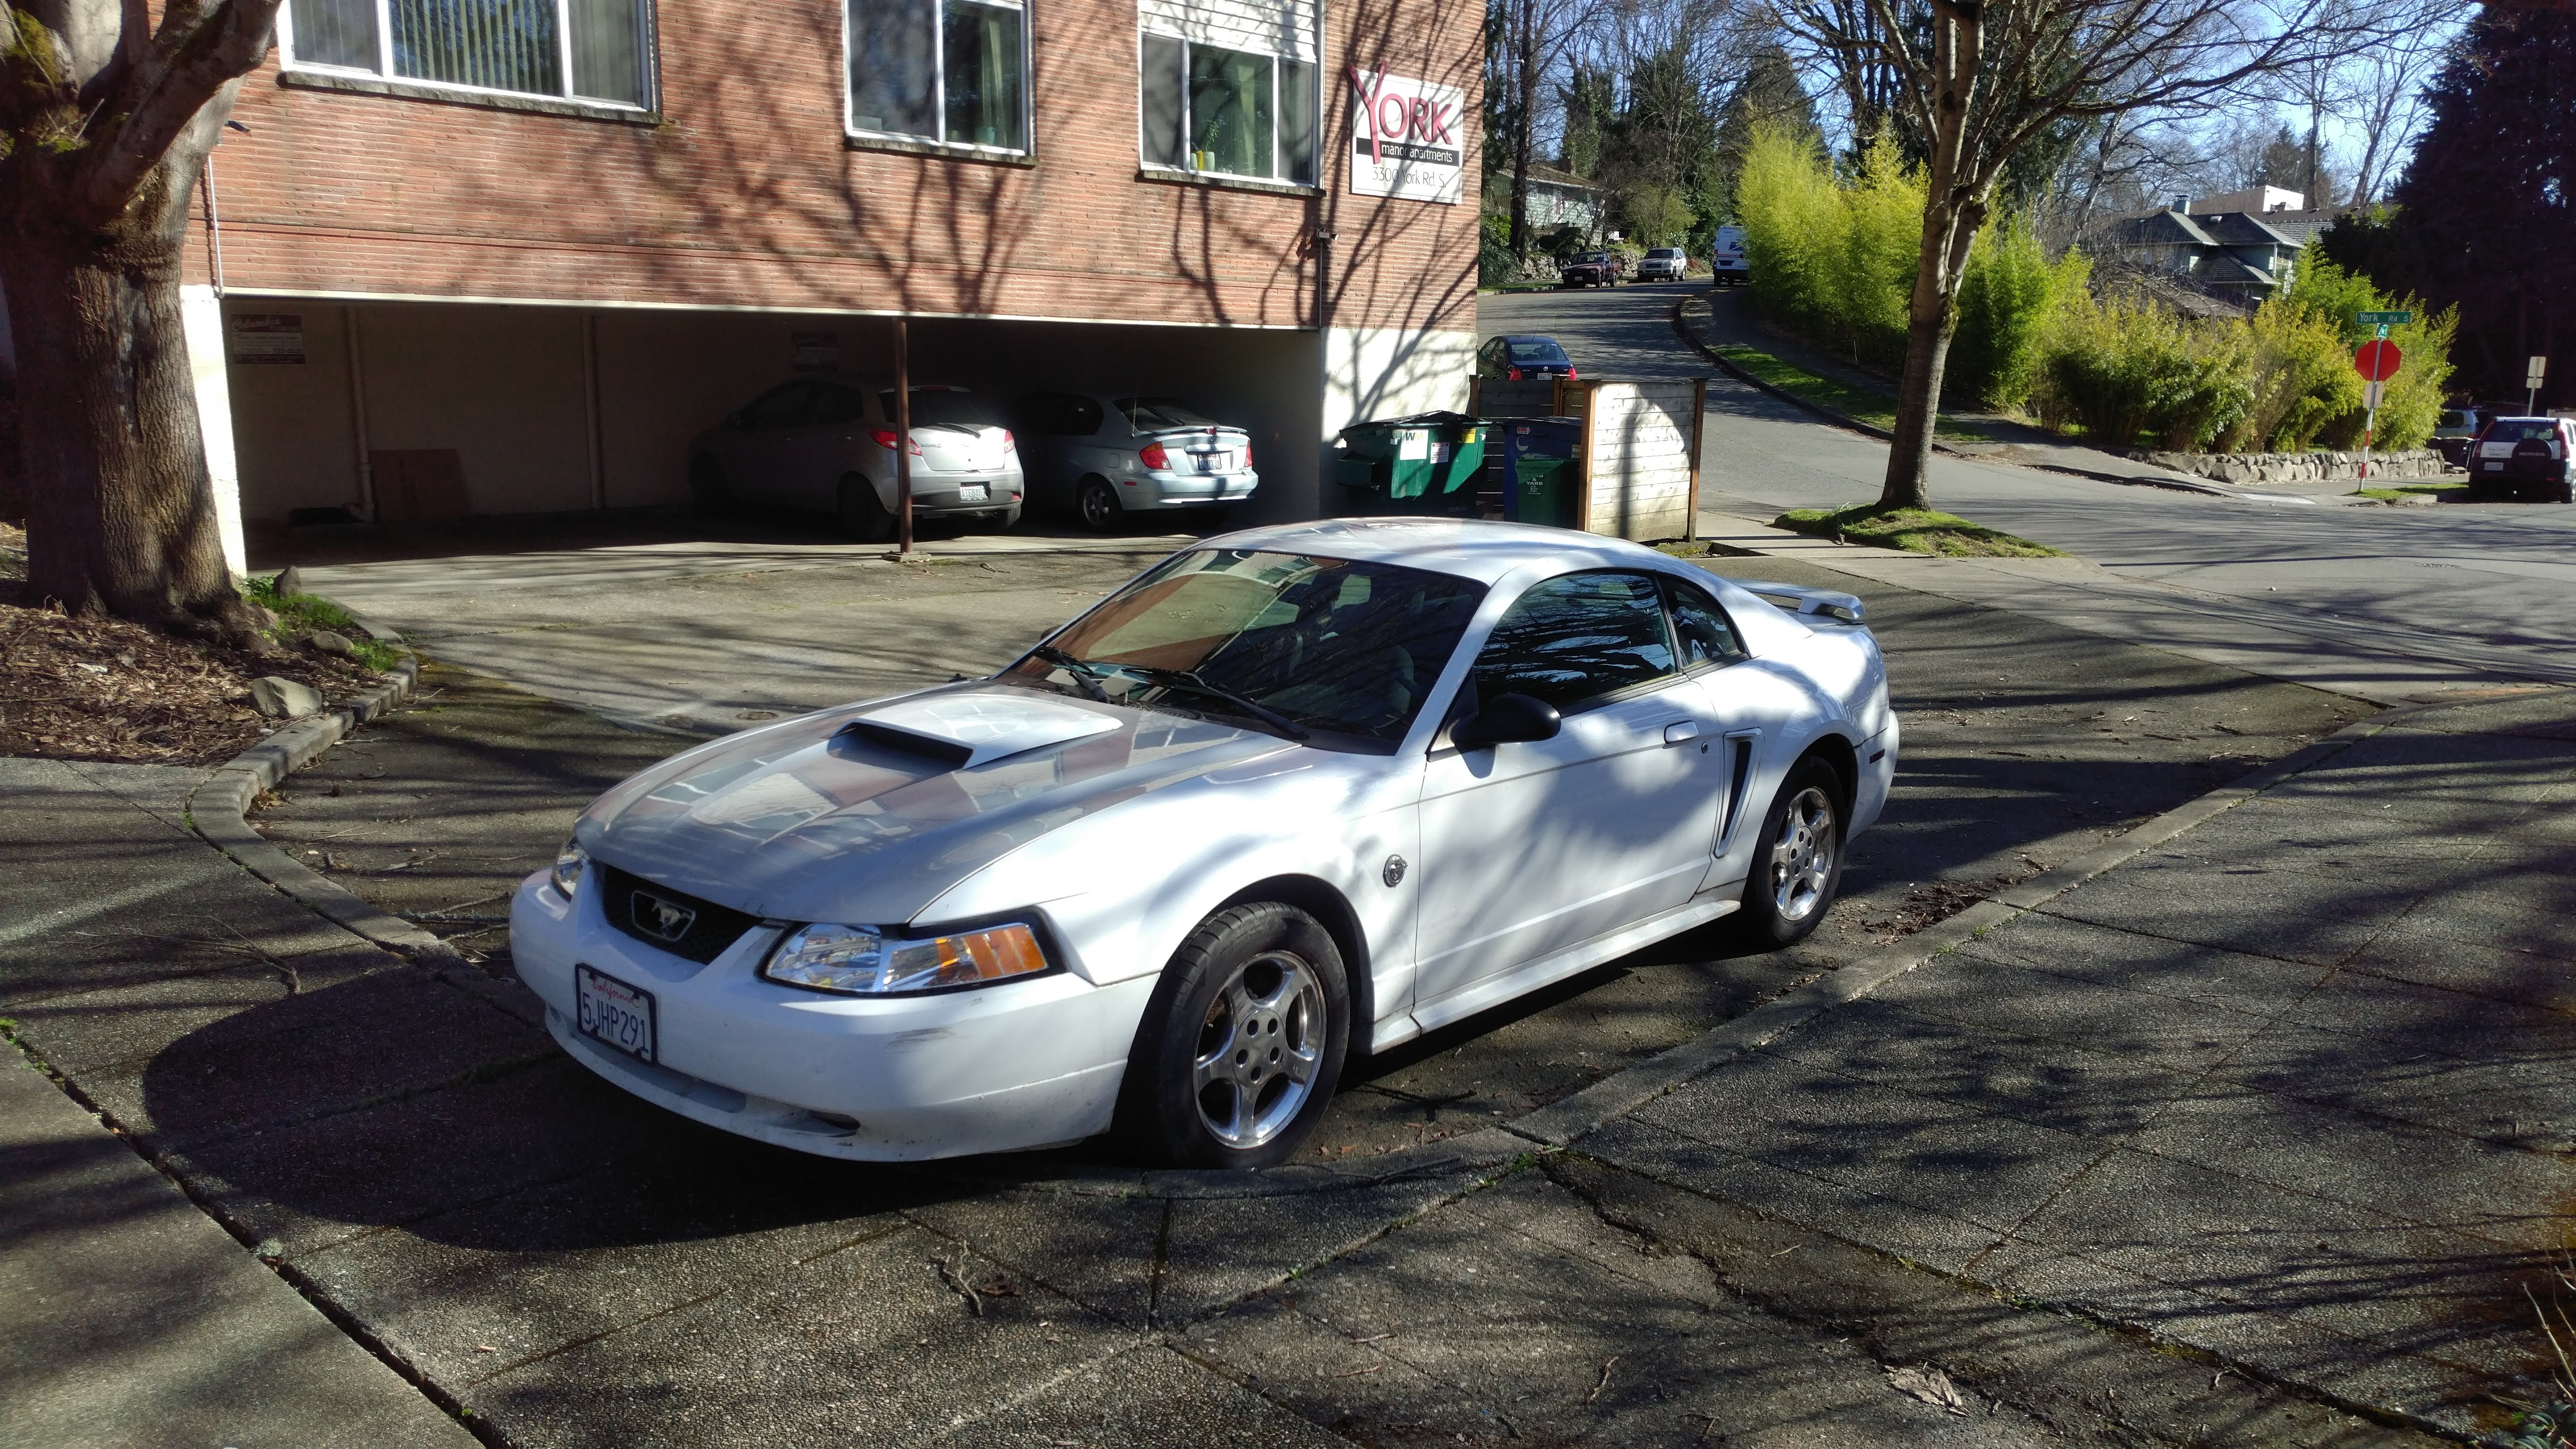 Used 2004 Ford Mustang For Sale in Seattle WA